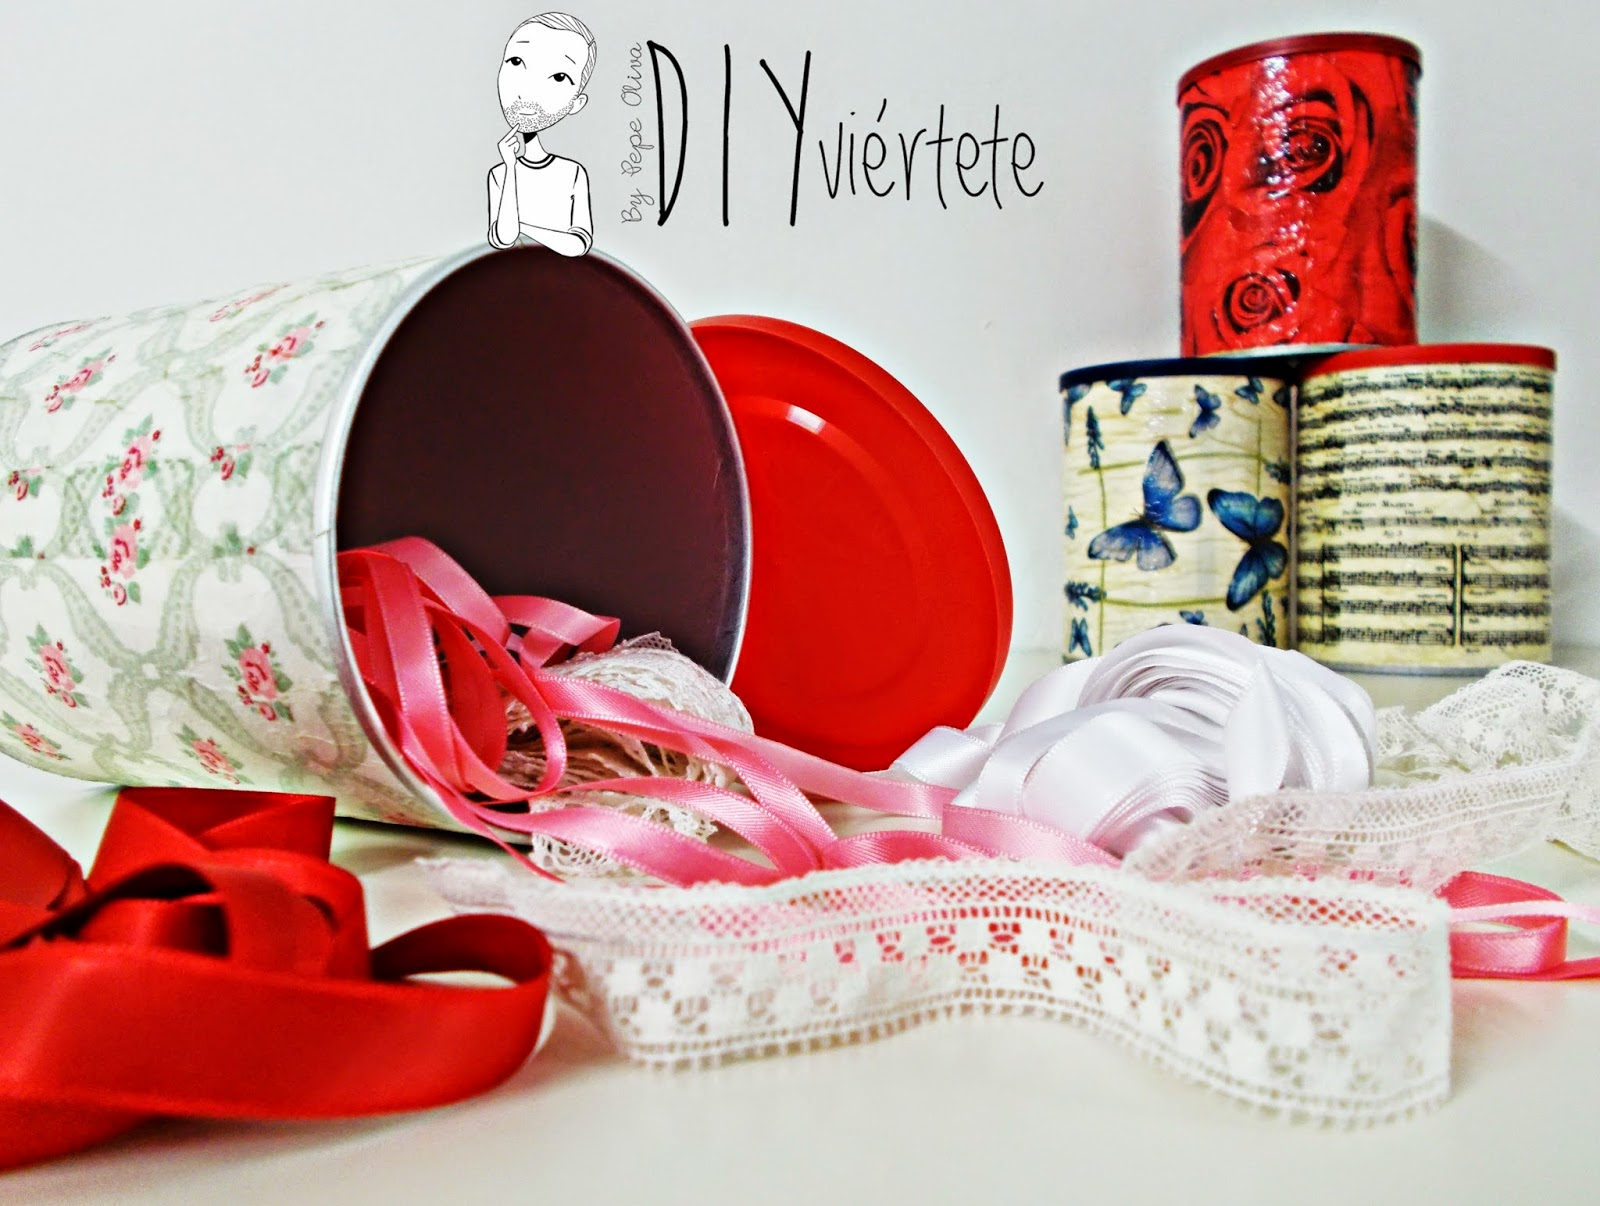 DIY-botes-decoupage-servilletas-cola blanca-ideas regalo-reciclar-reutilizar (1)